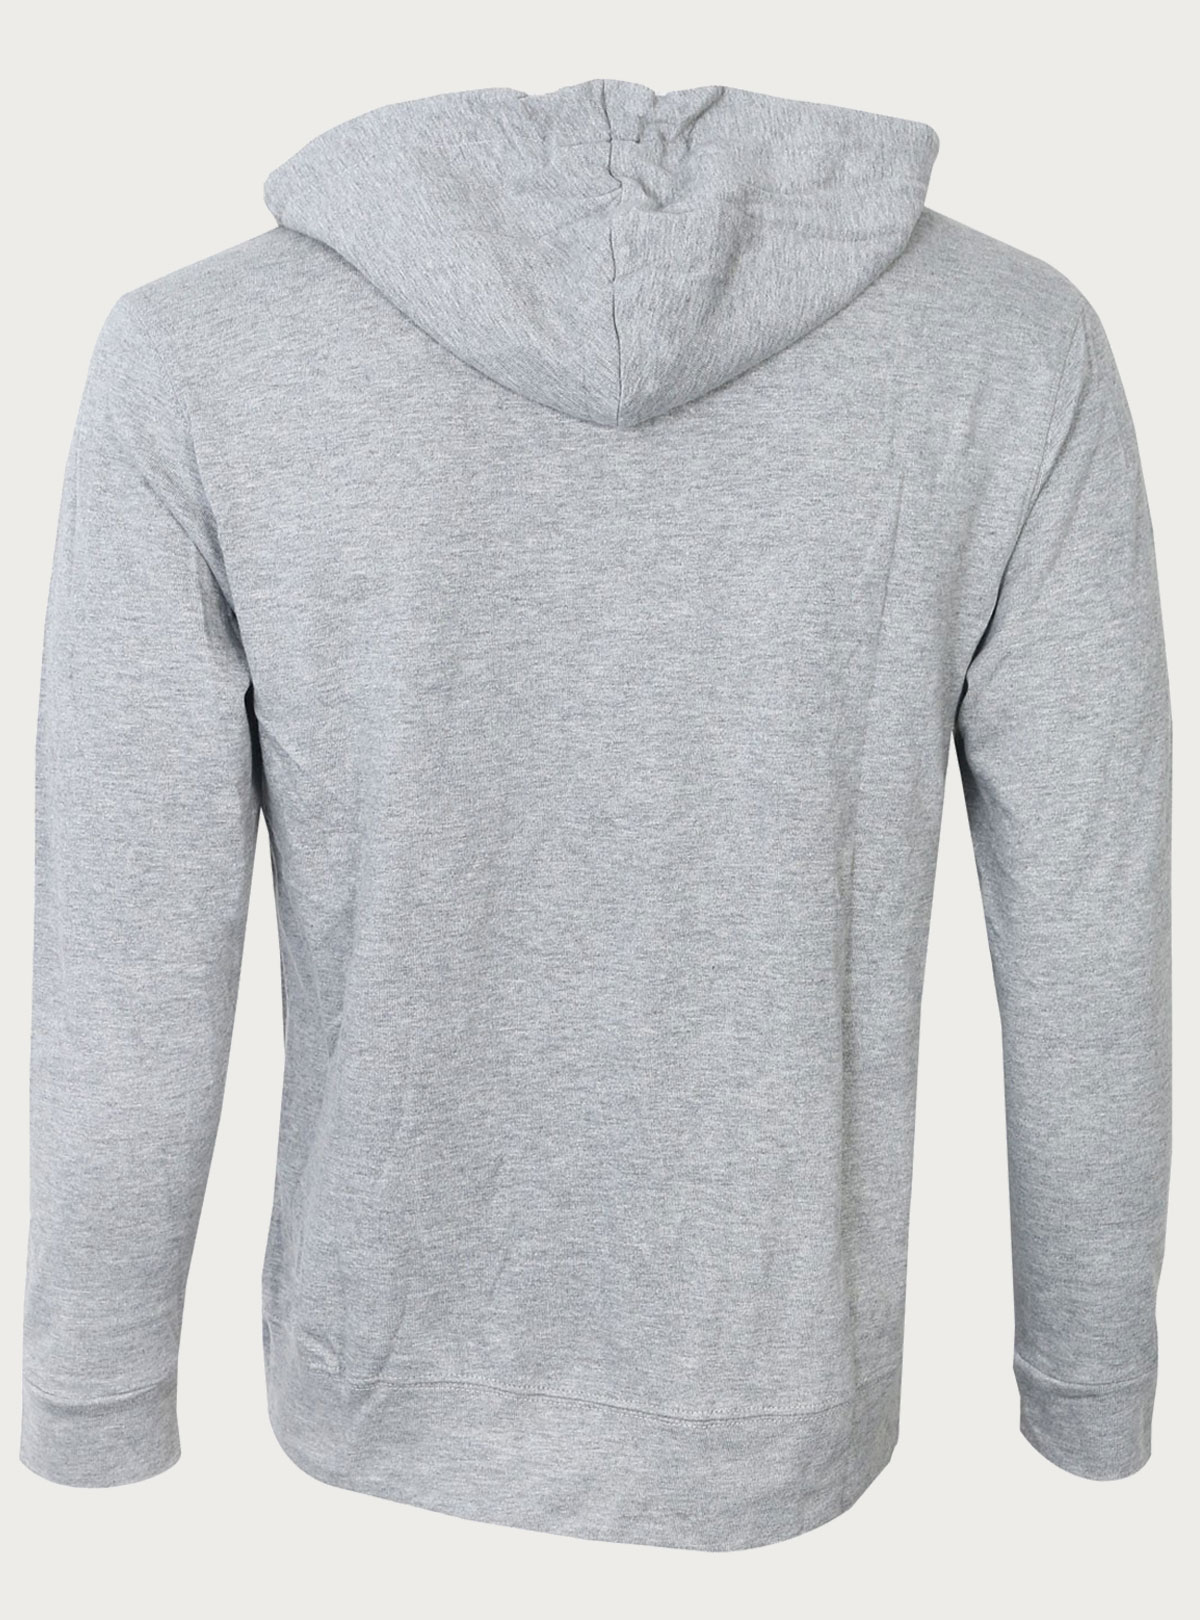 STYLISH HOODIE SWEATER BY TOM & TAILOR | Esho.com | Best online ...